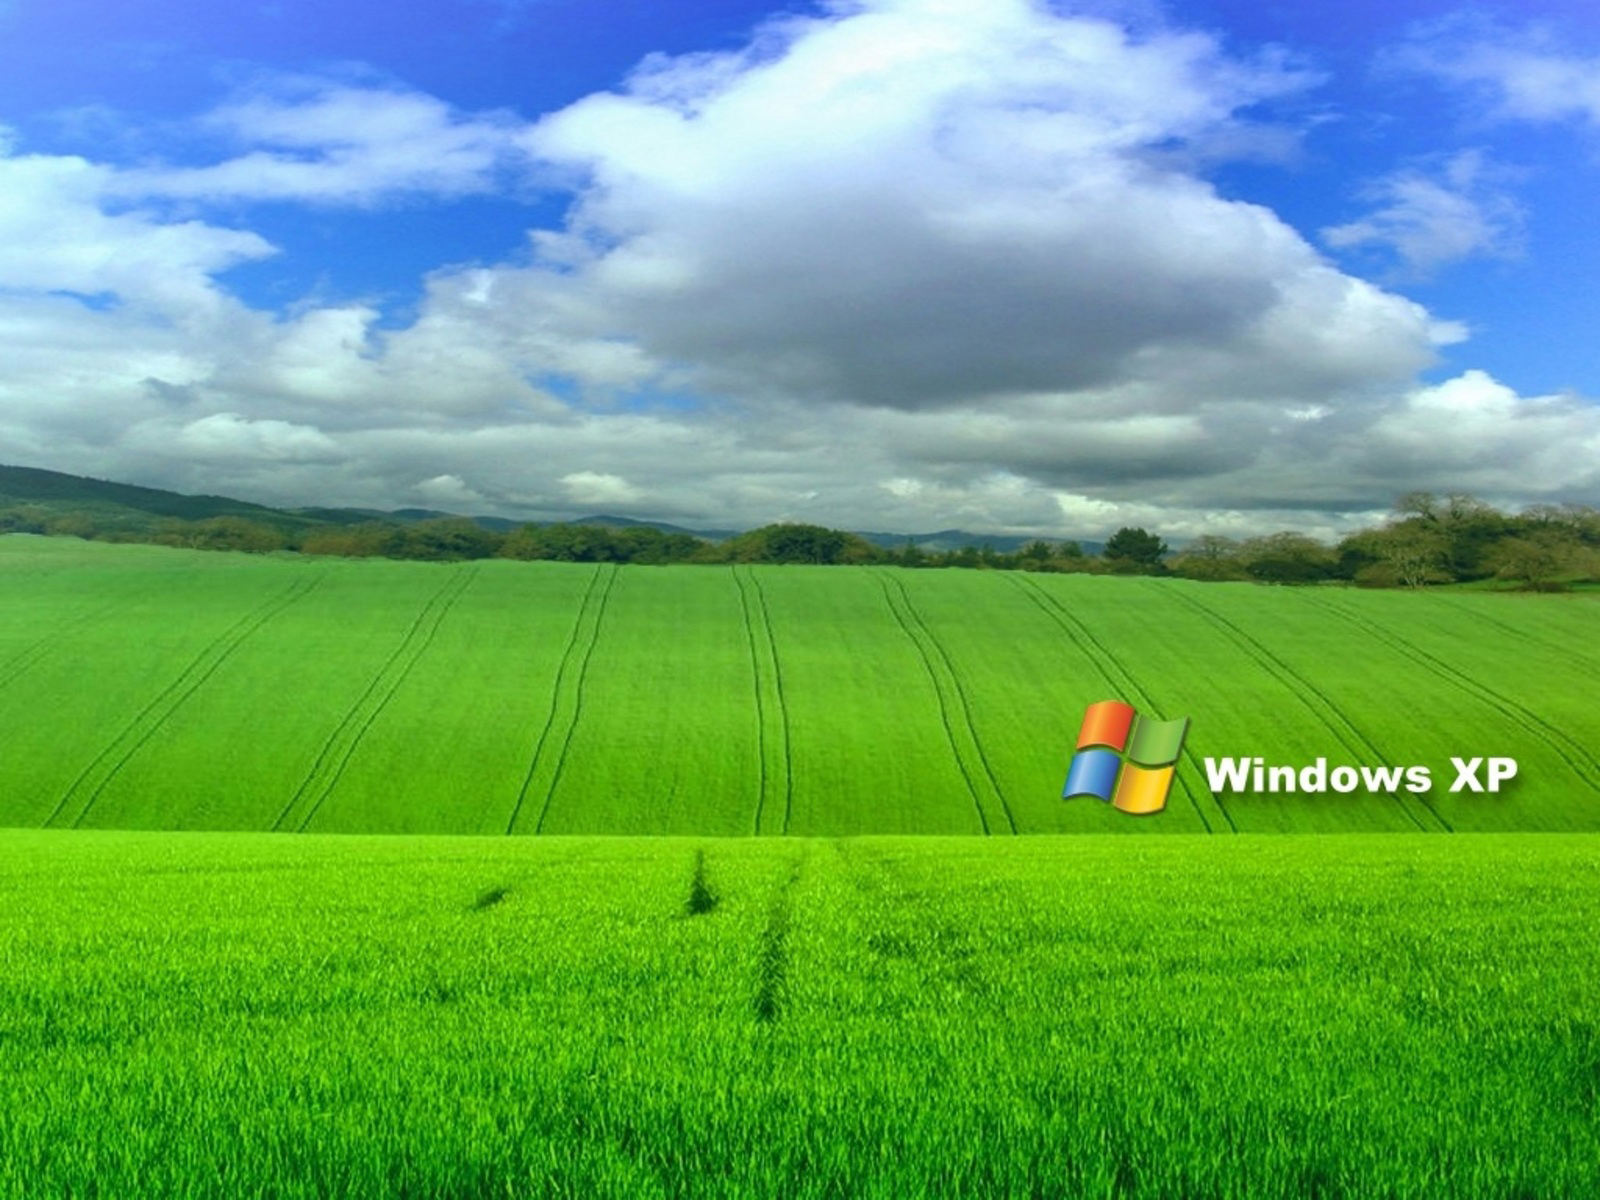 windows xp wallpaper 37